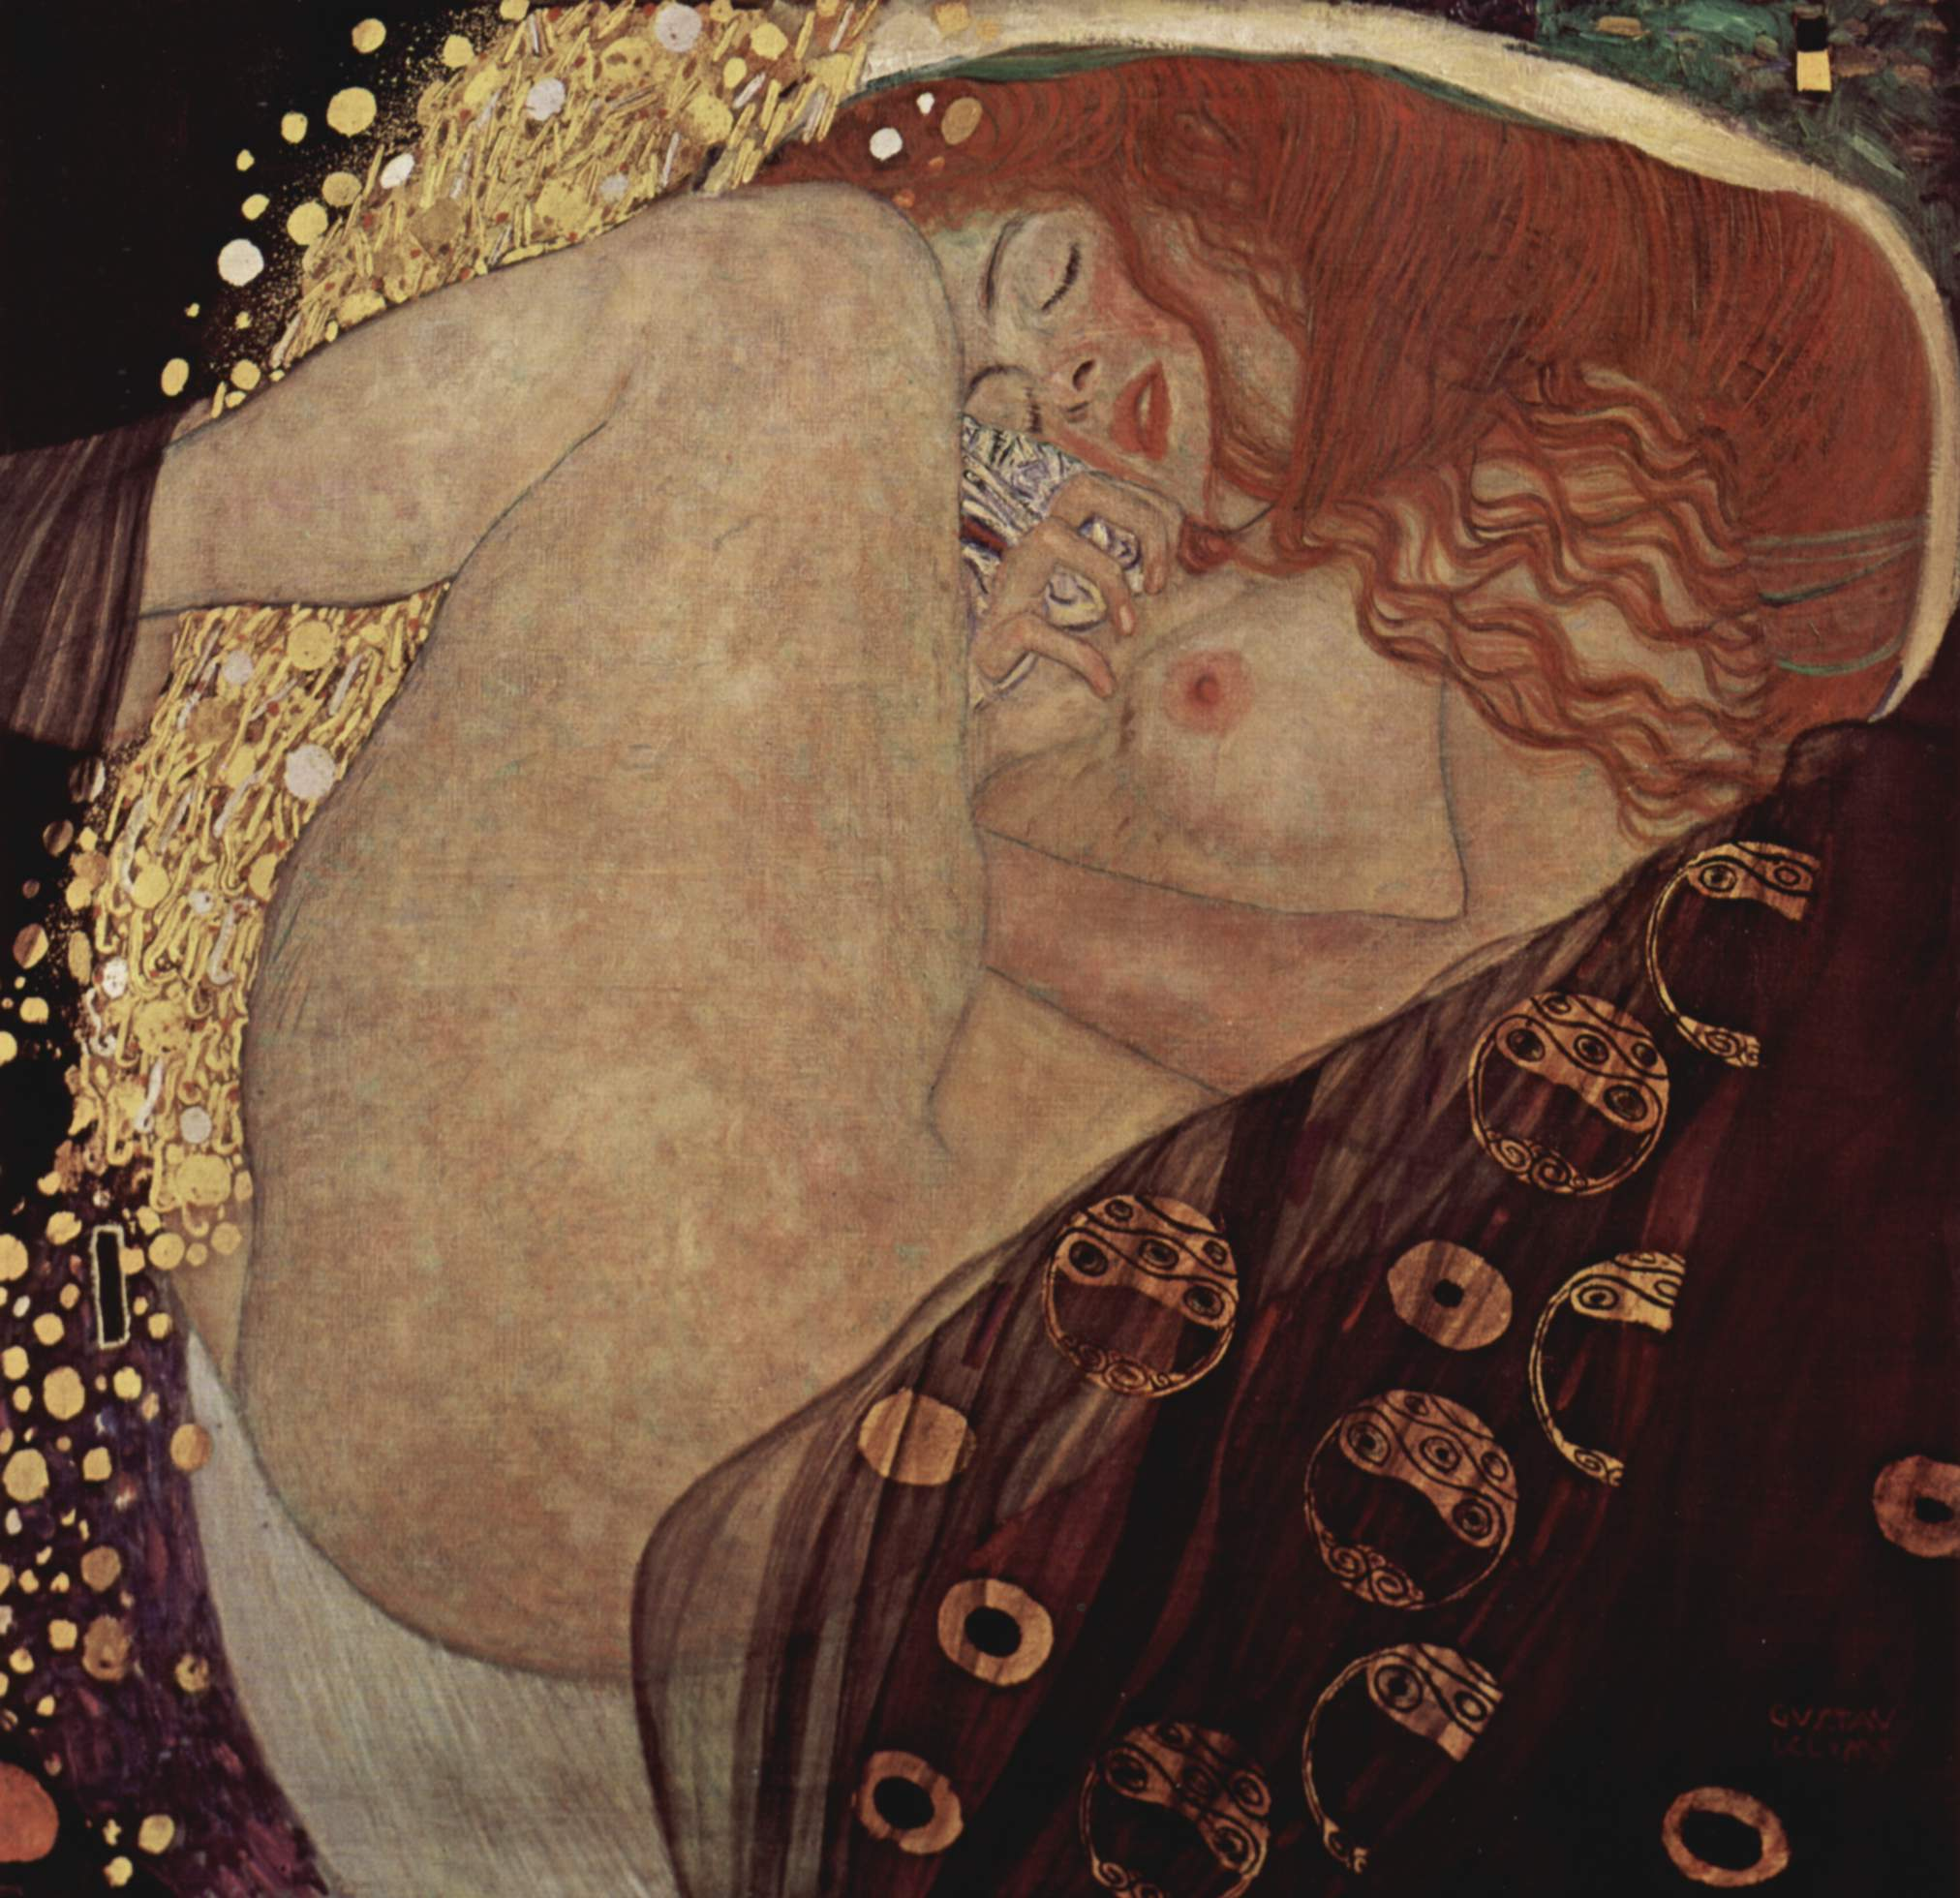 https://upload.wikimedia.org/wikipedia/commons/c/c8/Gustav_Klimt_010.jpg